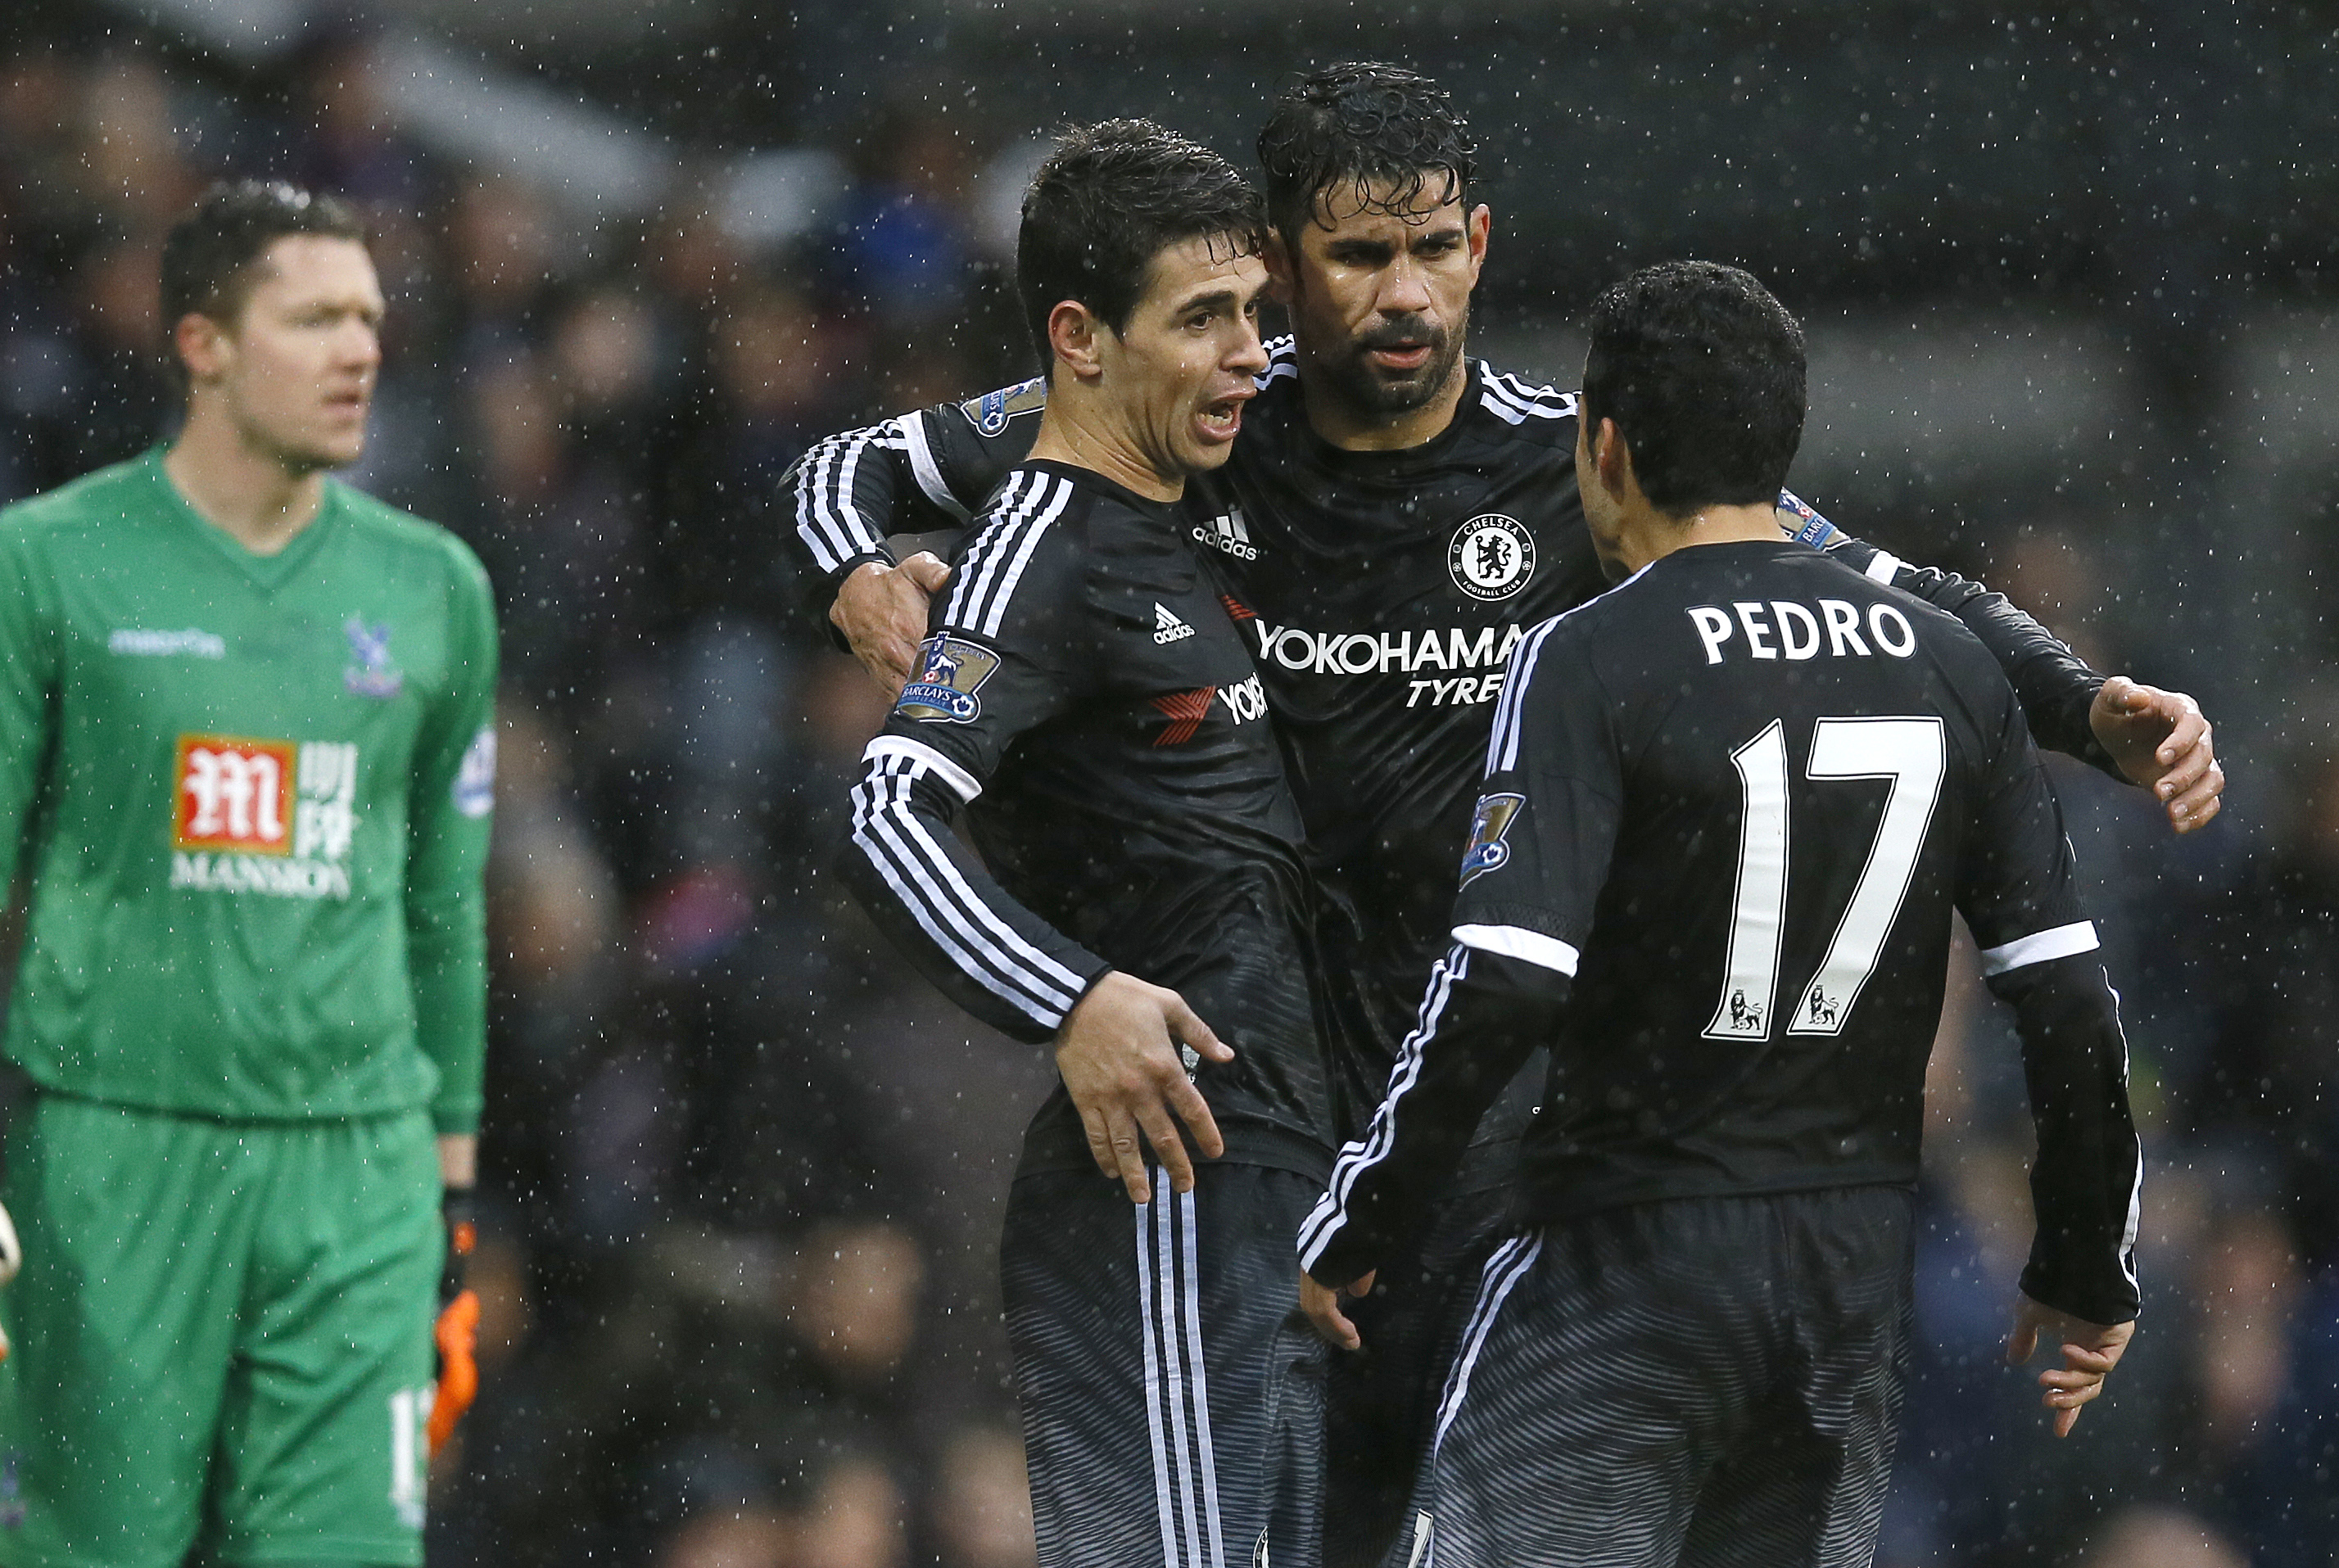 Chelsea's Oscar, front left, hugs Diego Costa, centre, and, Pedro, right, as he celebrates scoring a goal during the English Premier League soccer match between Crystal Palace and Chelsea at Selhurst Park stadium in London, Sunday, January 3, 2016. Photo: AP